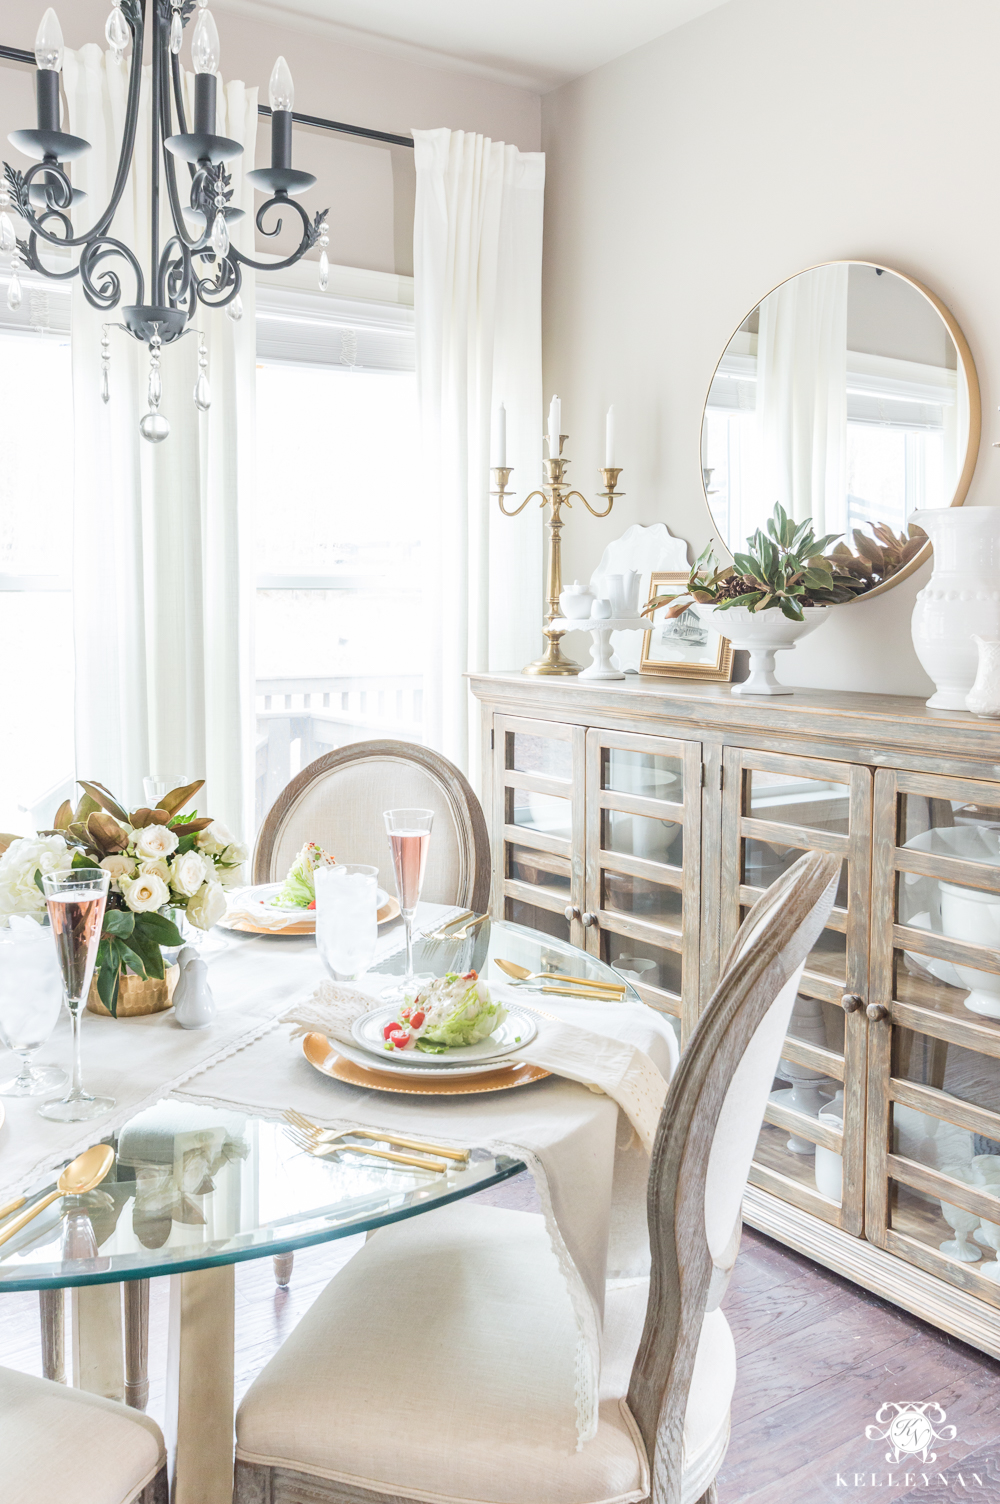 Galentine's Luncheon table and food ideas